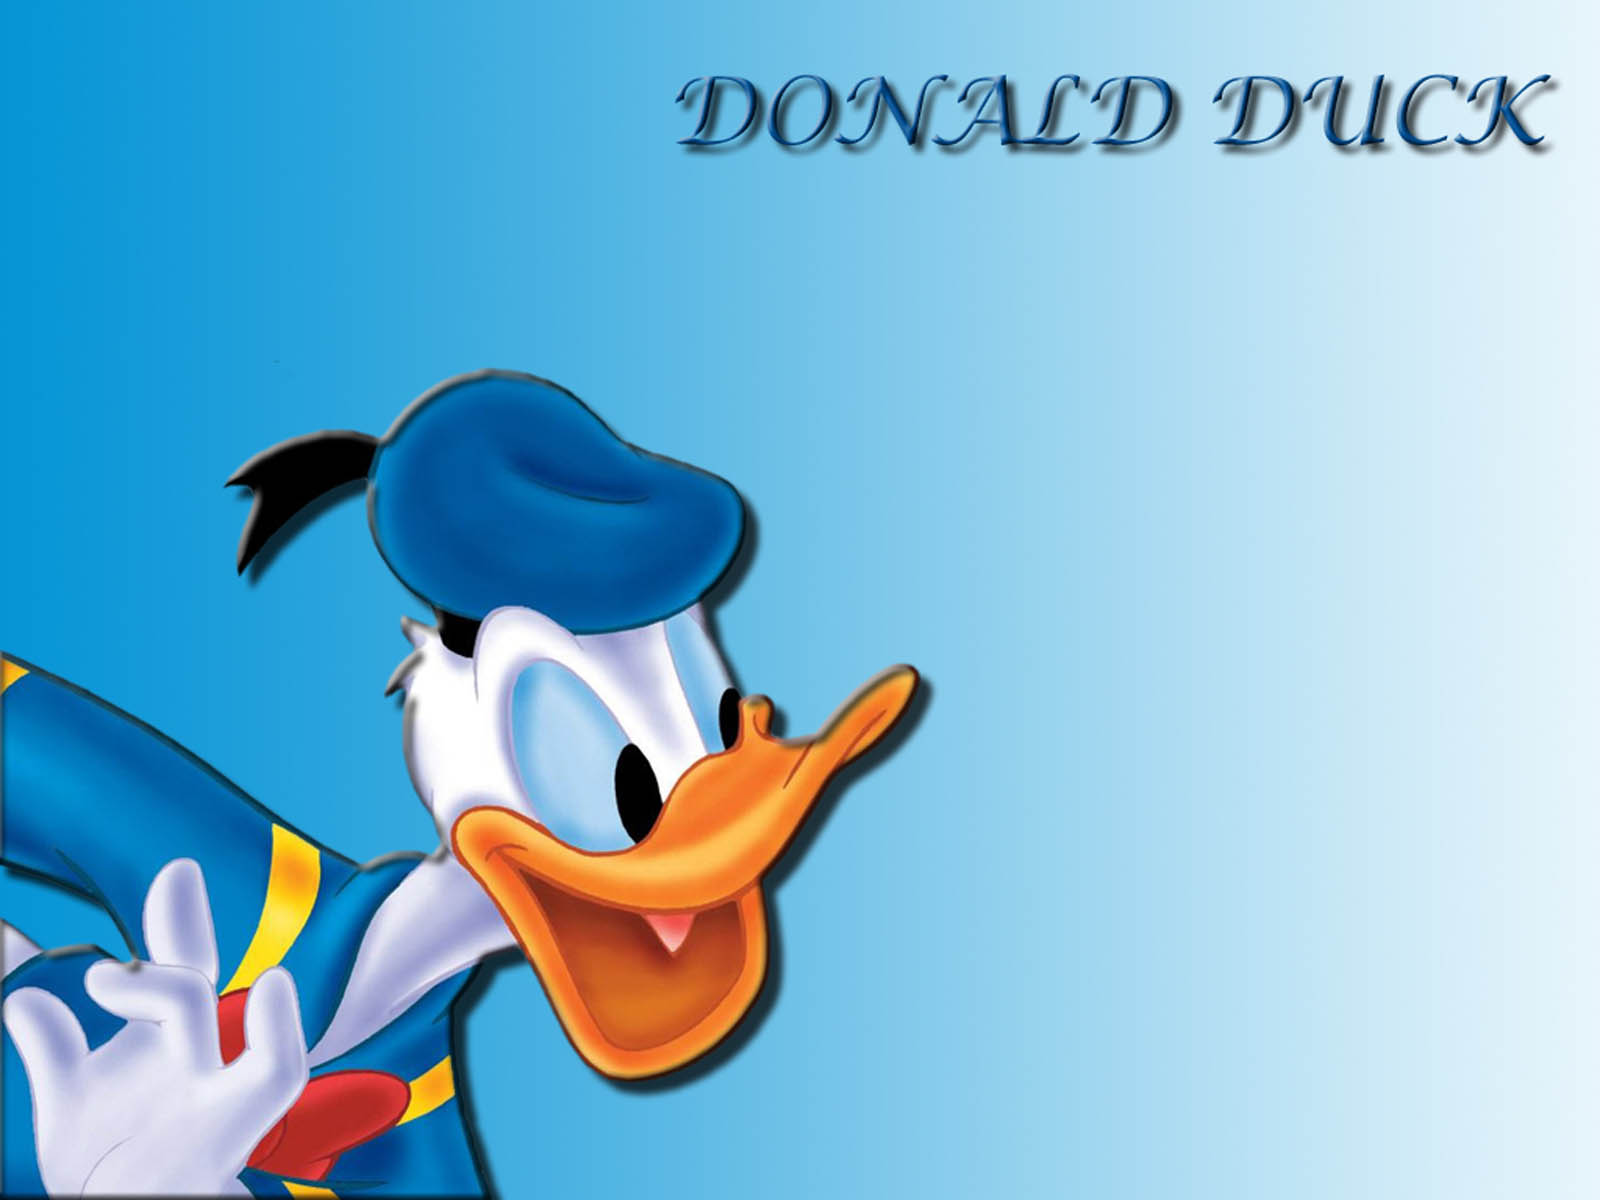 Donald duck hd images - photo#20